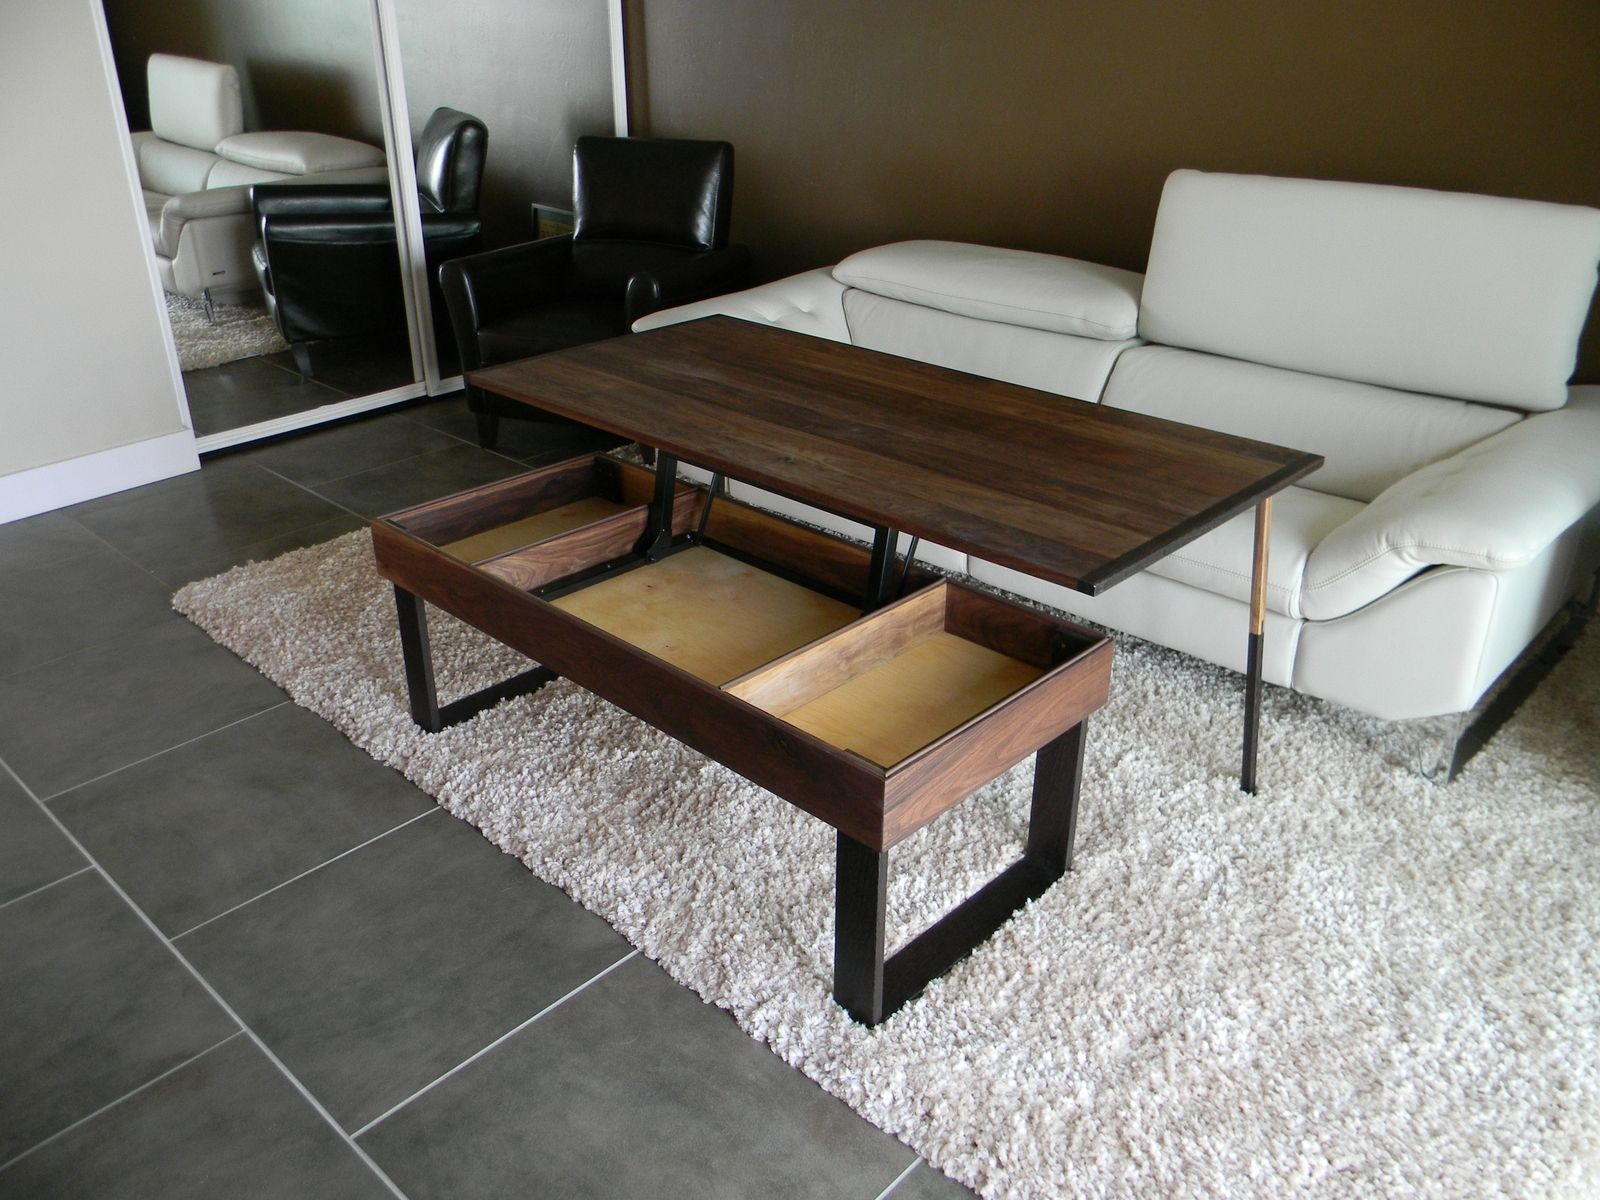 No More Awkward Trays With This Pop Up Coffee Table By Jonathan Walkey Of La